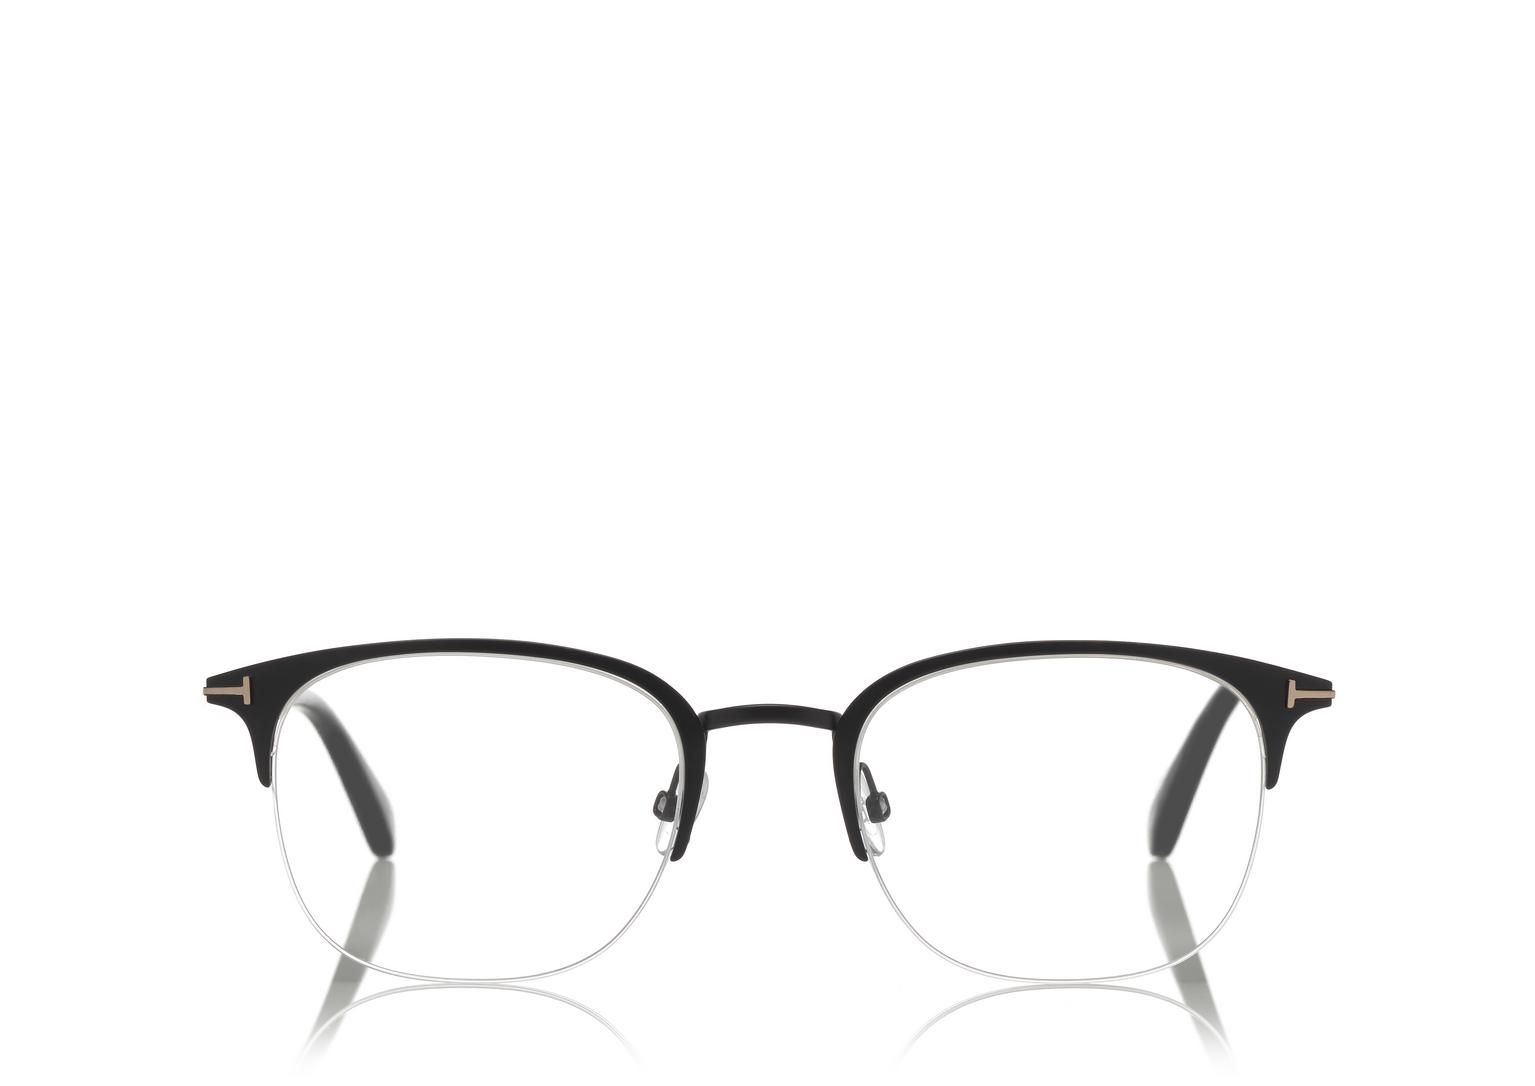 febb8971c2 Metal soft square optical frame